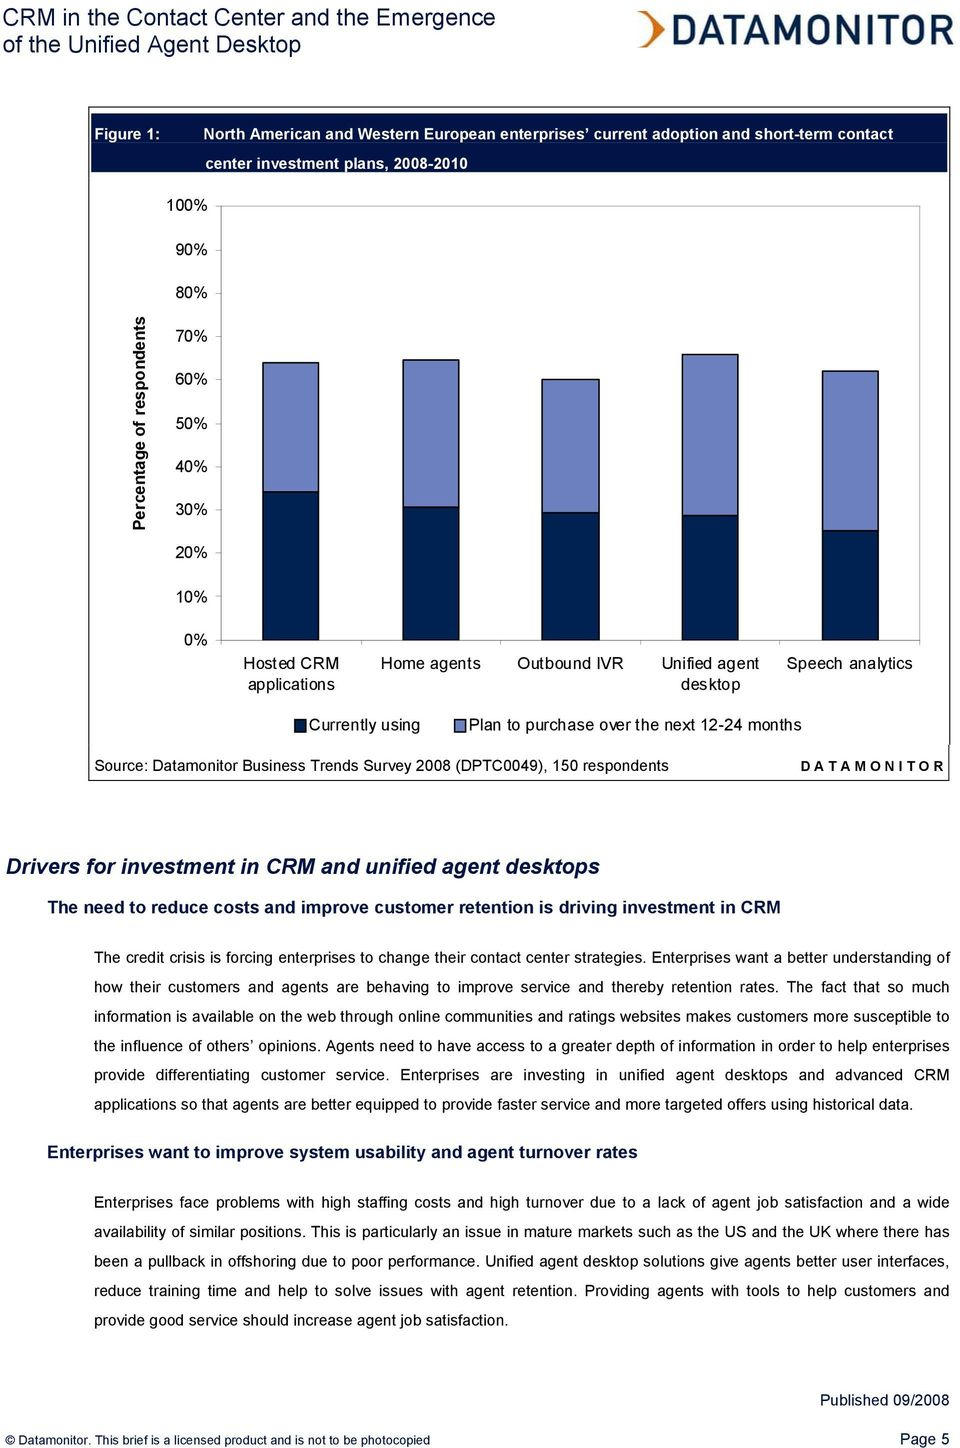 (DPTC0049), 150 respondents D A T A M O N I T O R Drivers for investment in CRM and unified agent desktops The need to reduce costs and improve customer retention is driving investment in CRM The